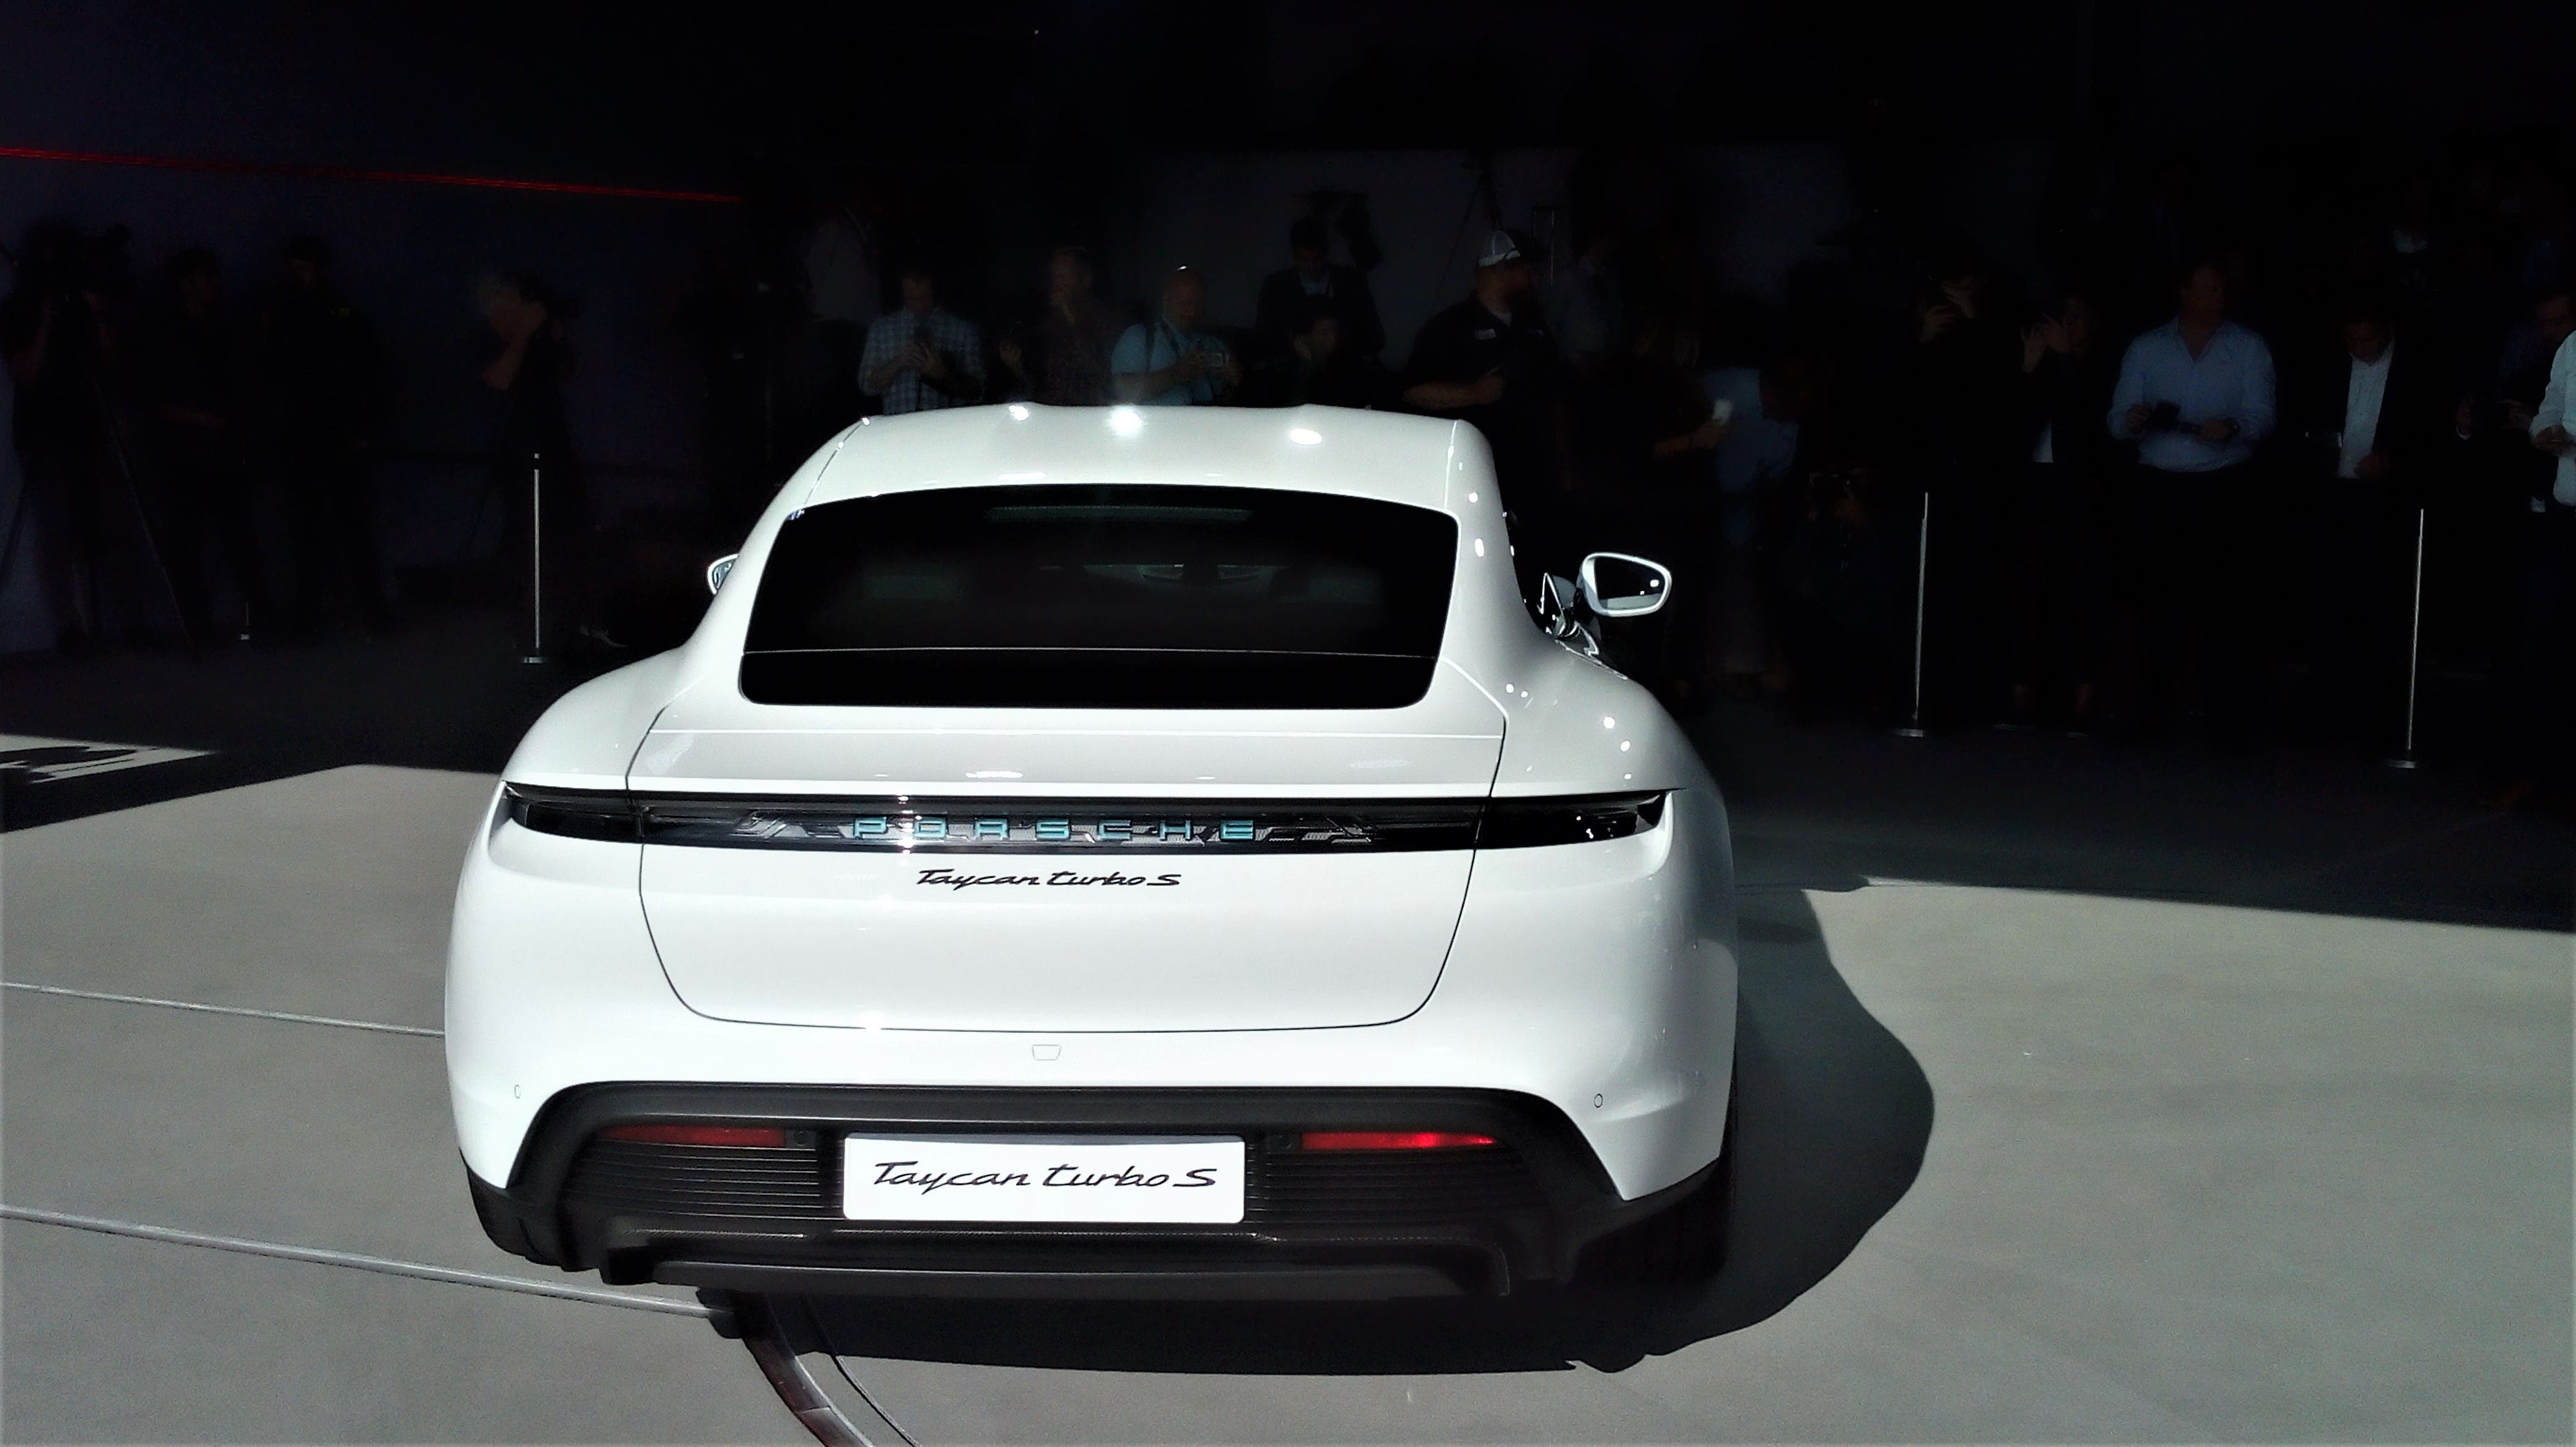 Porsche photo batch # 3 Images Ryan R. Mitchelll